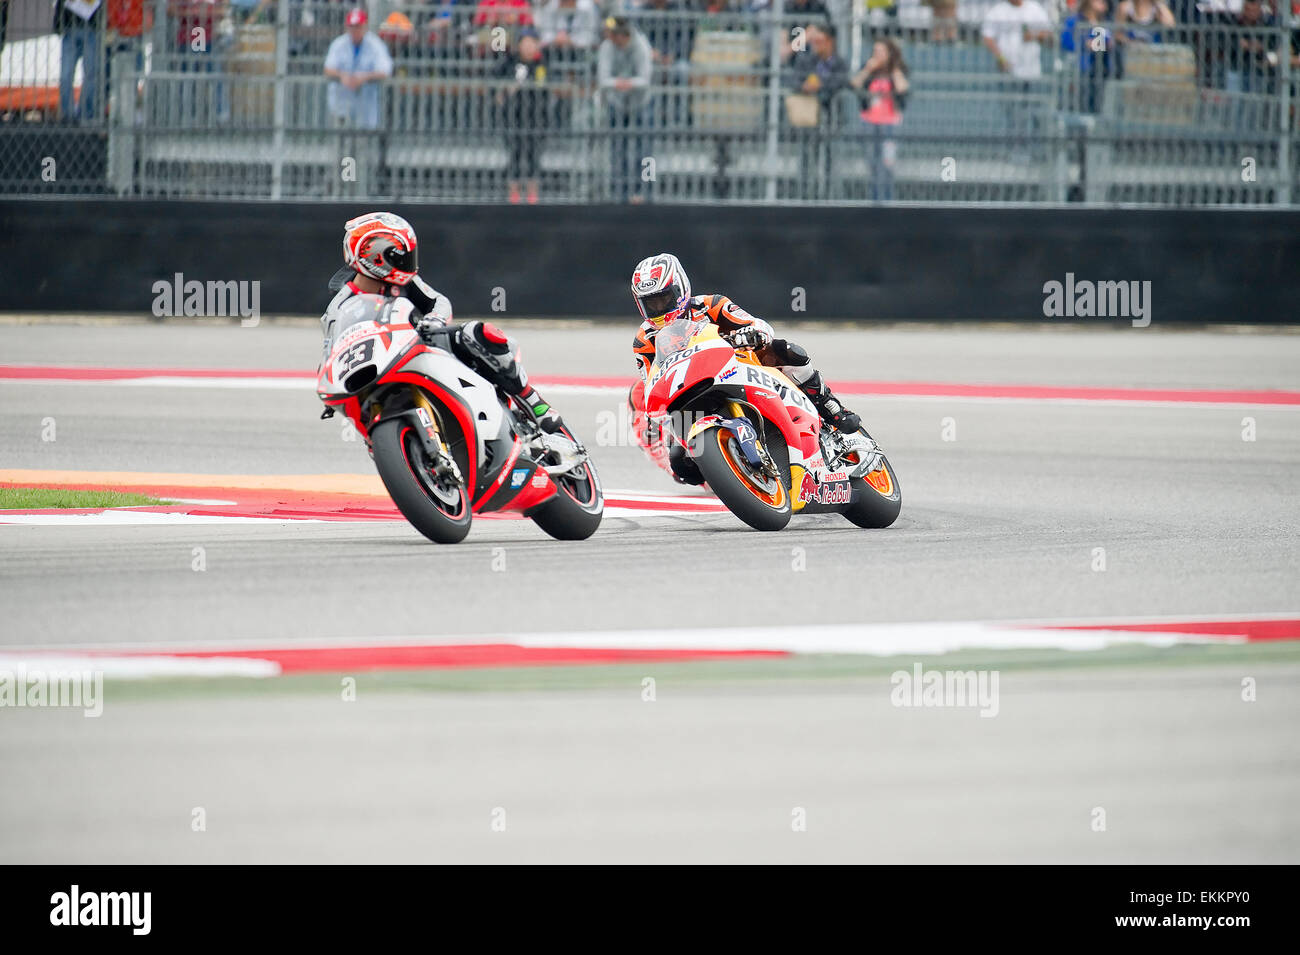 Austin, Texas, USA. 11th April, 2015. MotoGP Marco Melandri #33 with ...